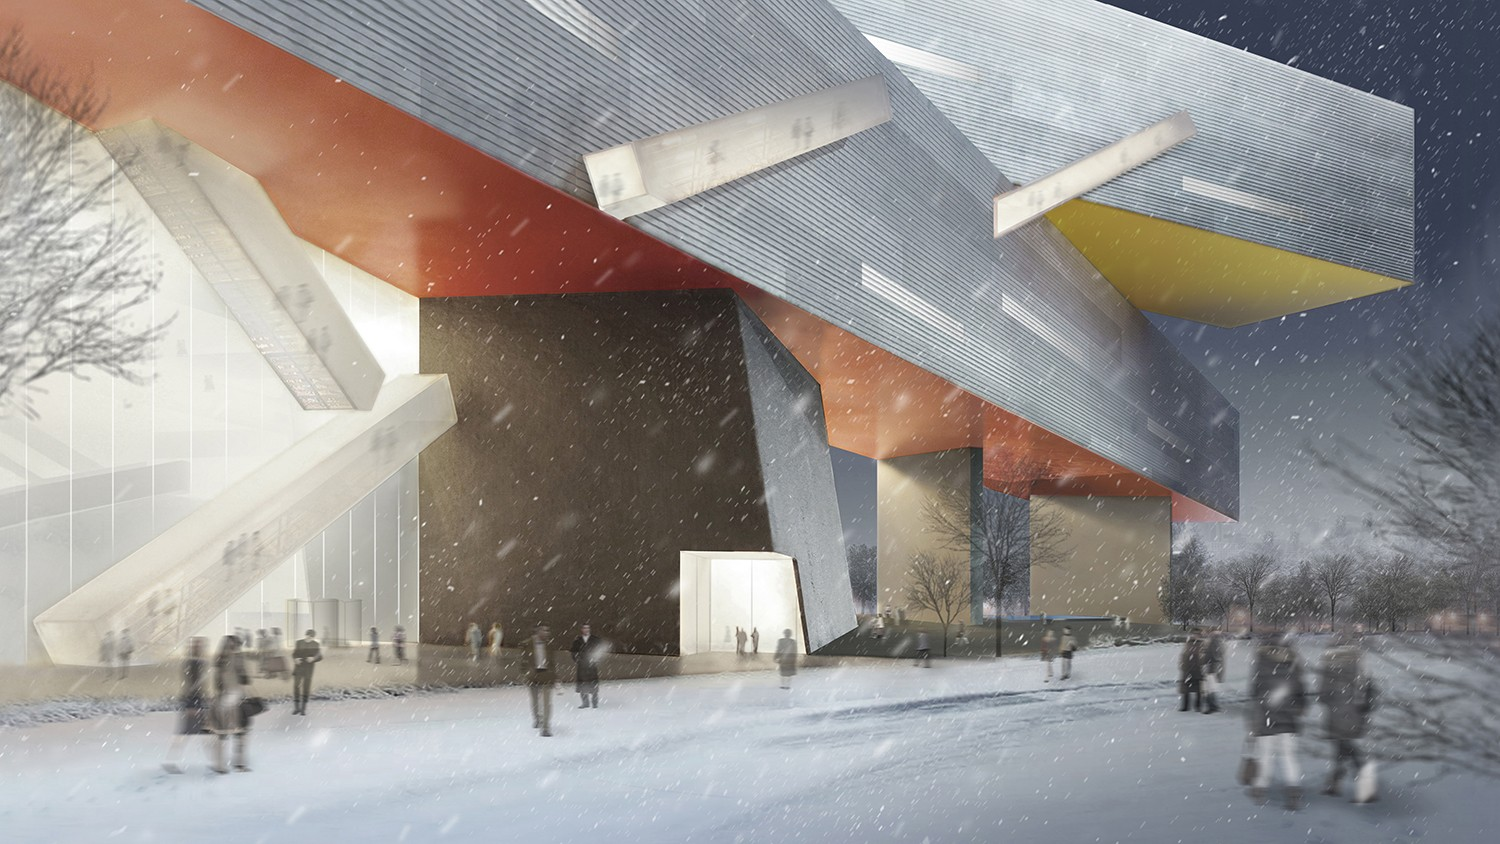 https://s3.us-east-2.amazonaws.com/steven-holl/uploads/projects/project-images/StevenHollArchitects_NCCA_view_snowynight_WH.jpg